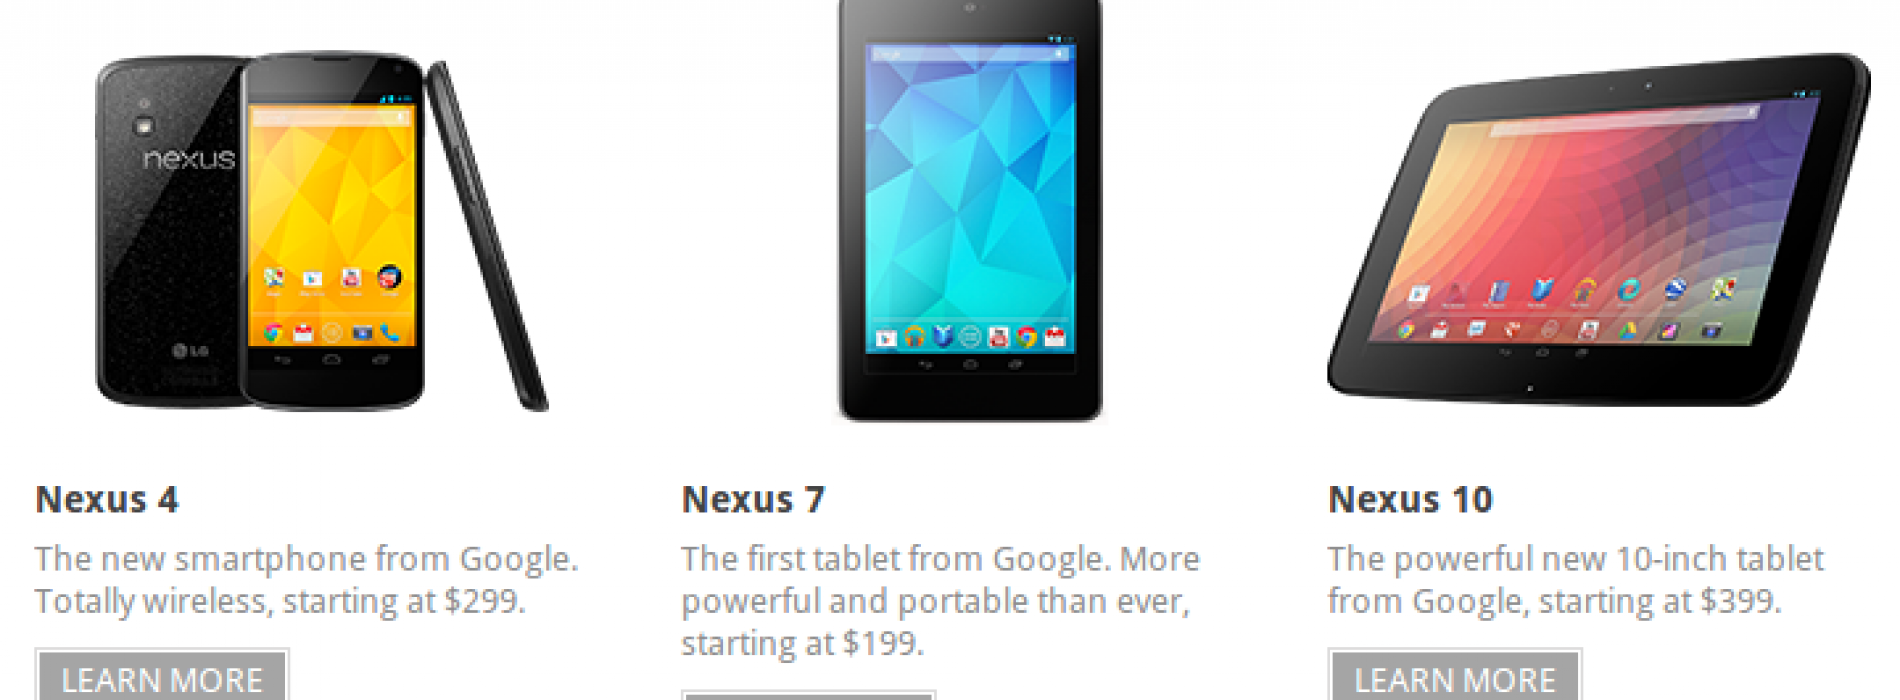 Nexus 4, Nexus 10 arrive in Google Play store